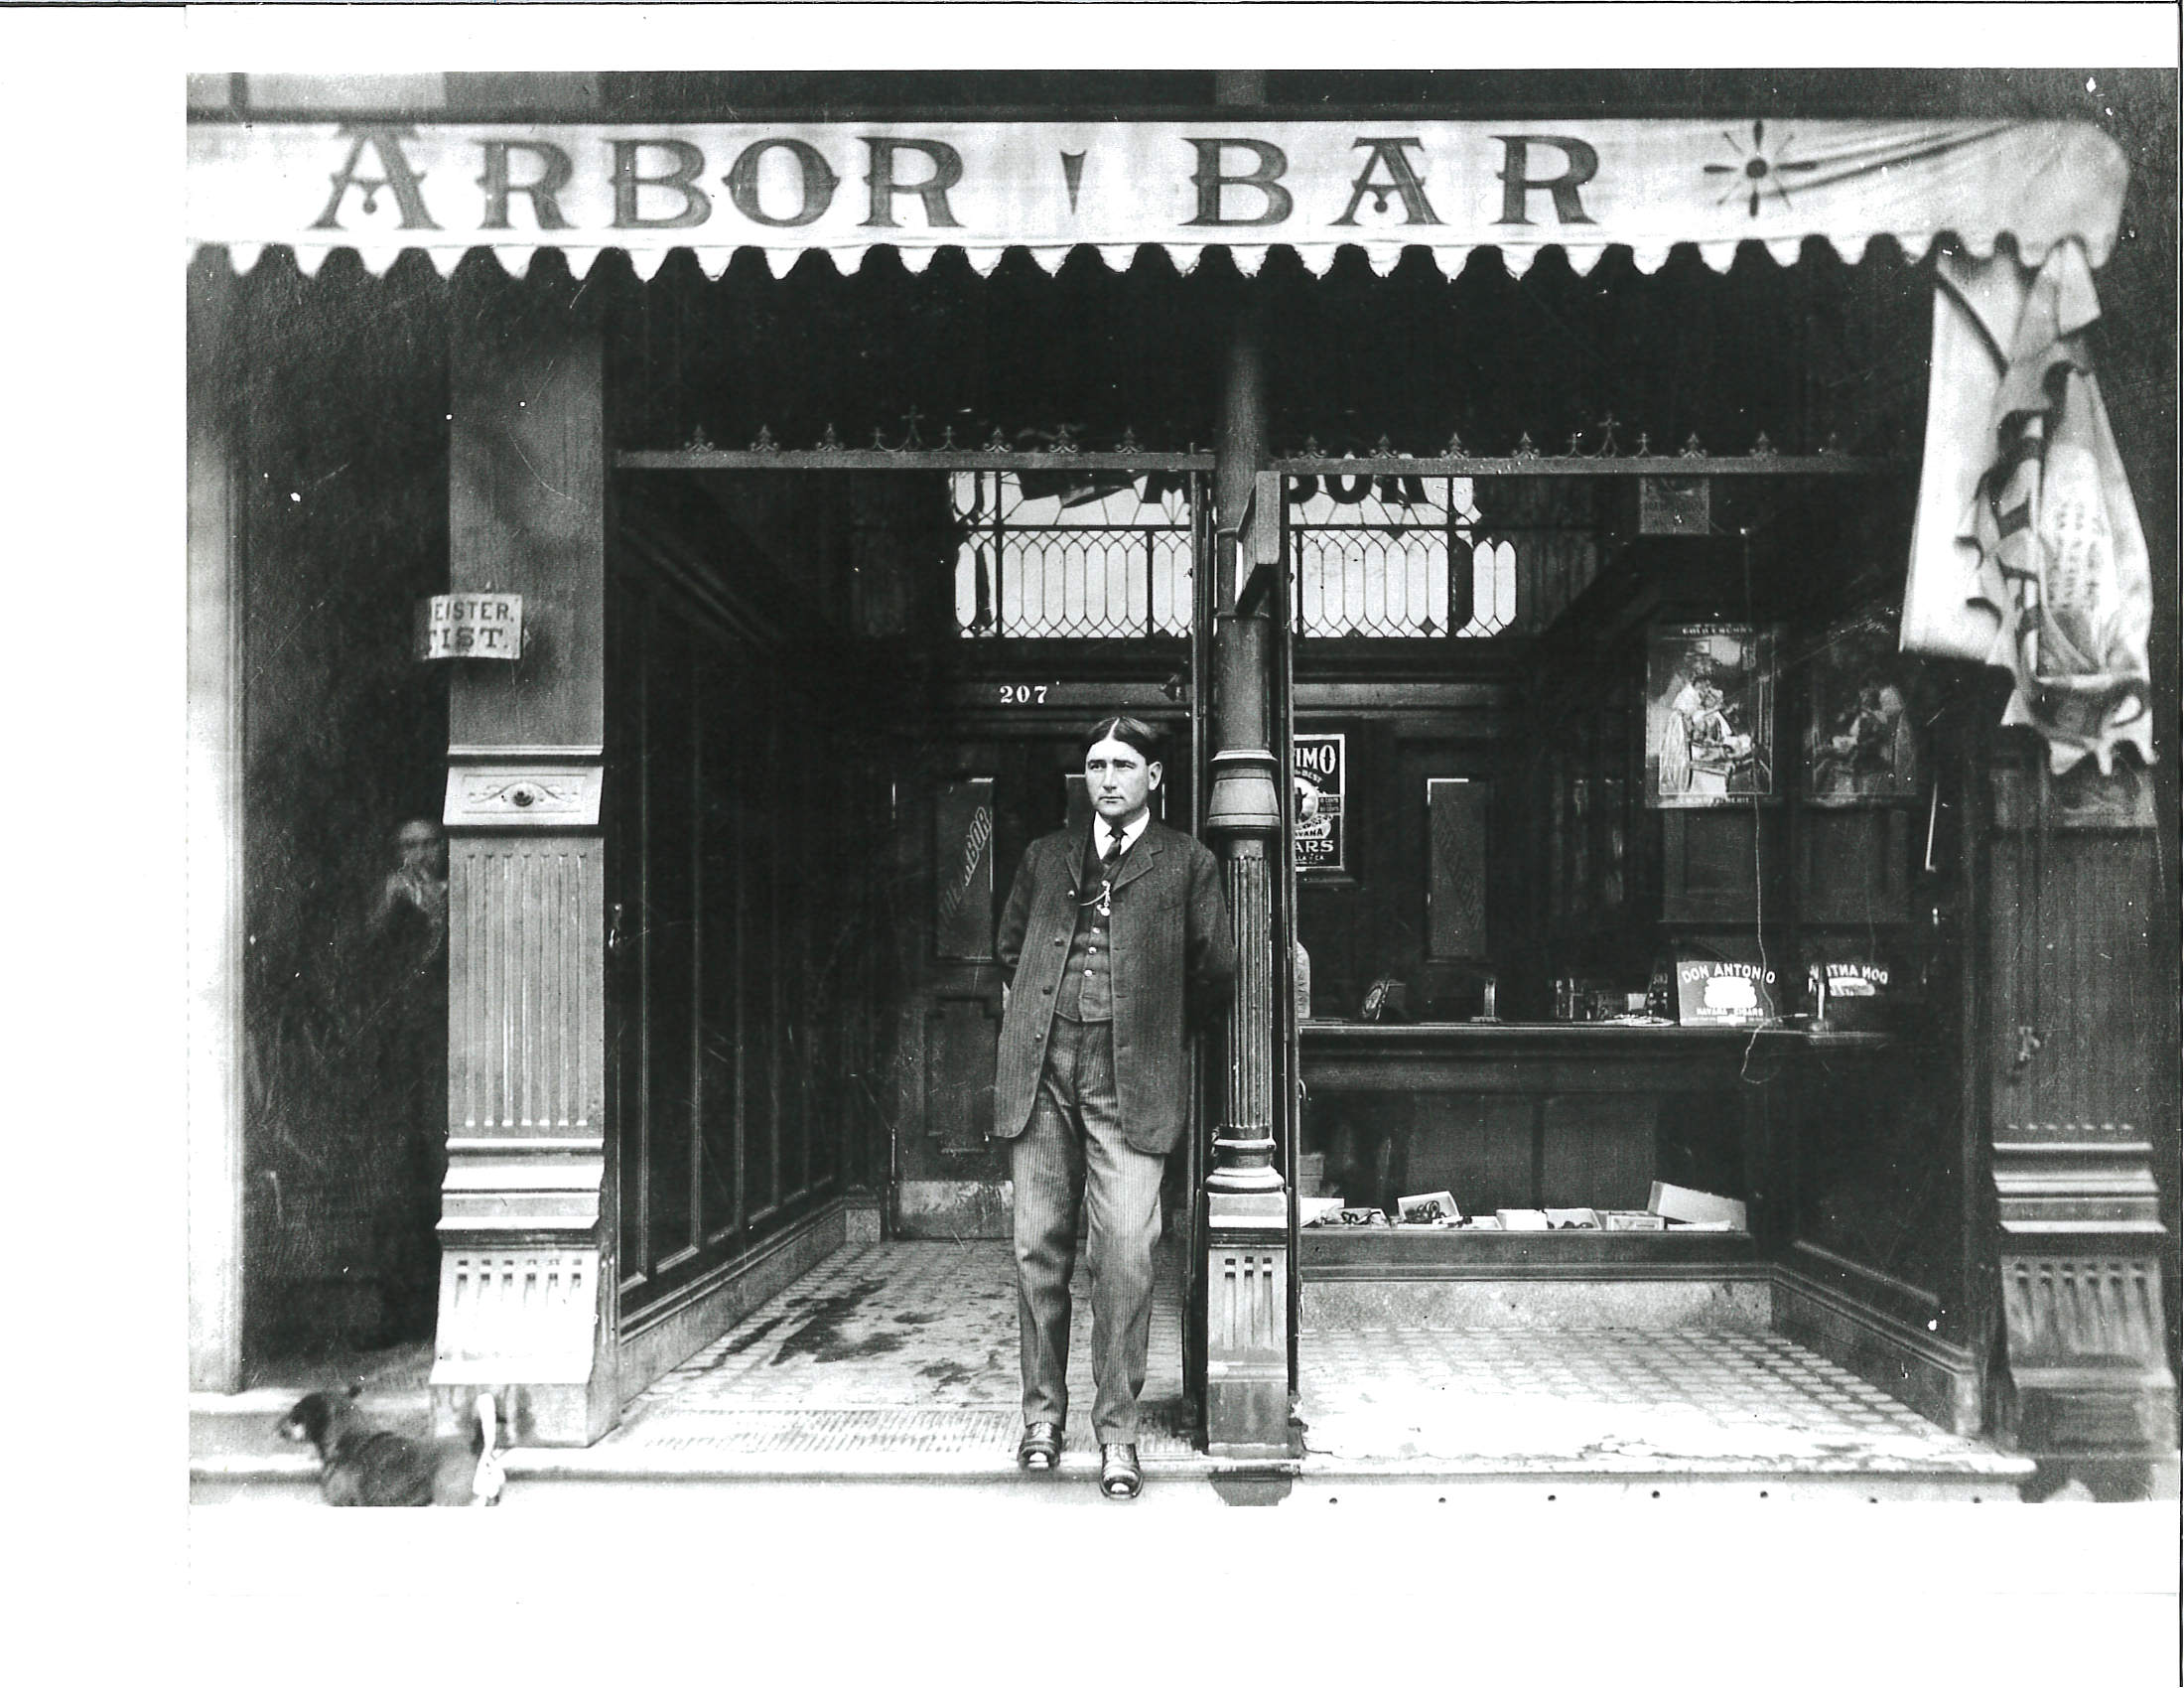 To see more historic saloon photos visit our Industry photo gallery.